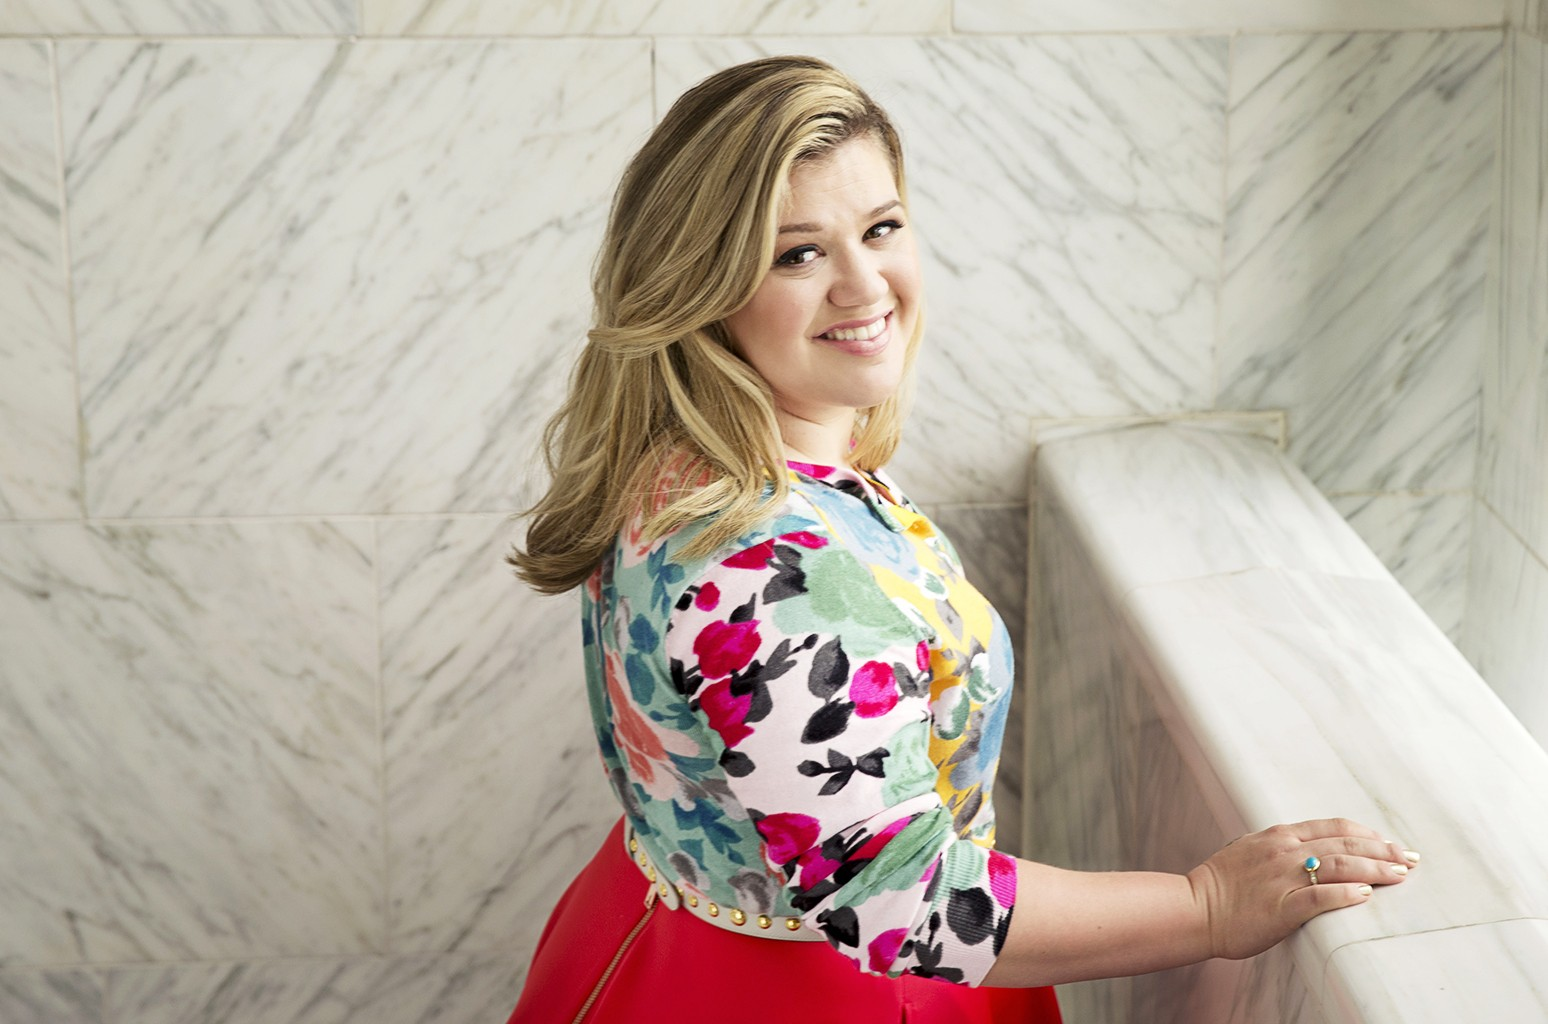 Kelly Clarkson photographed at the Sony Club in New York City on March 4, 2015.